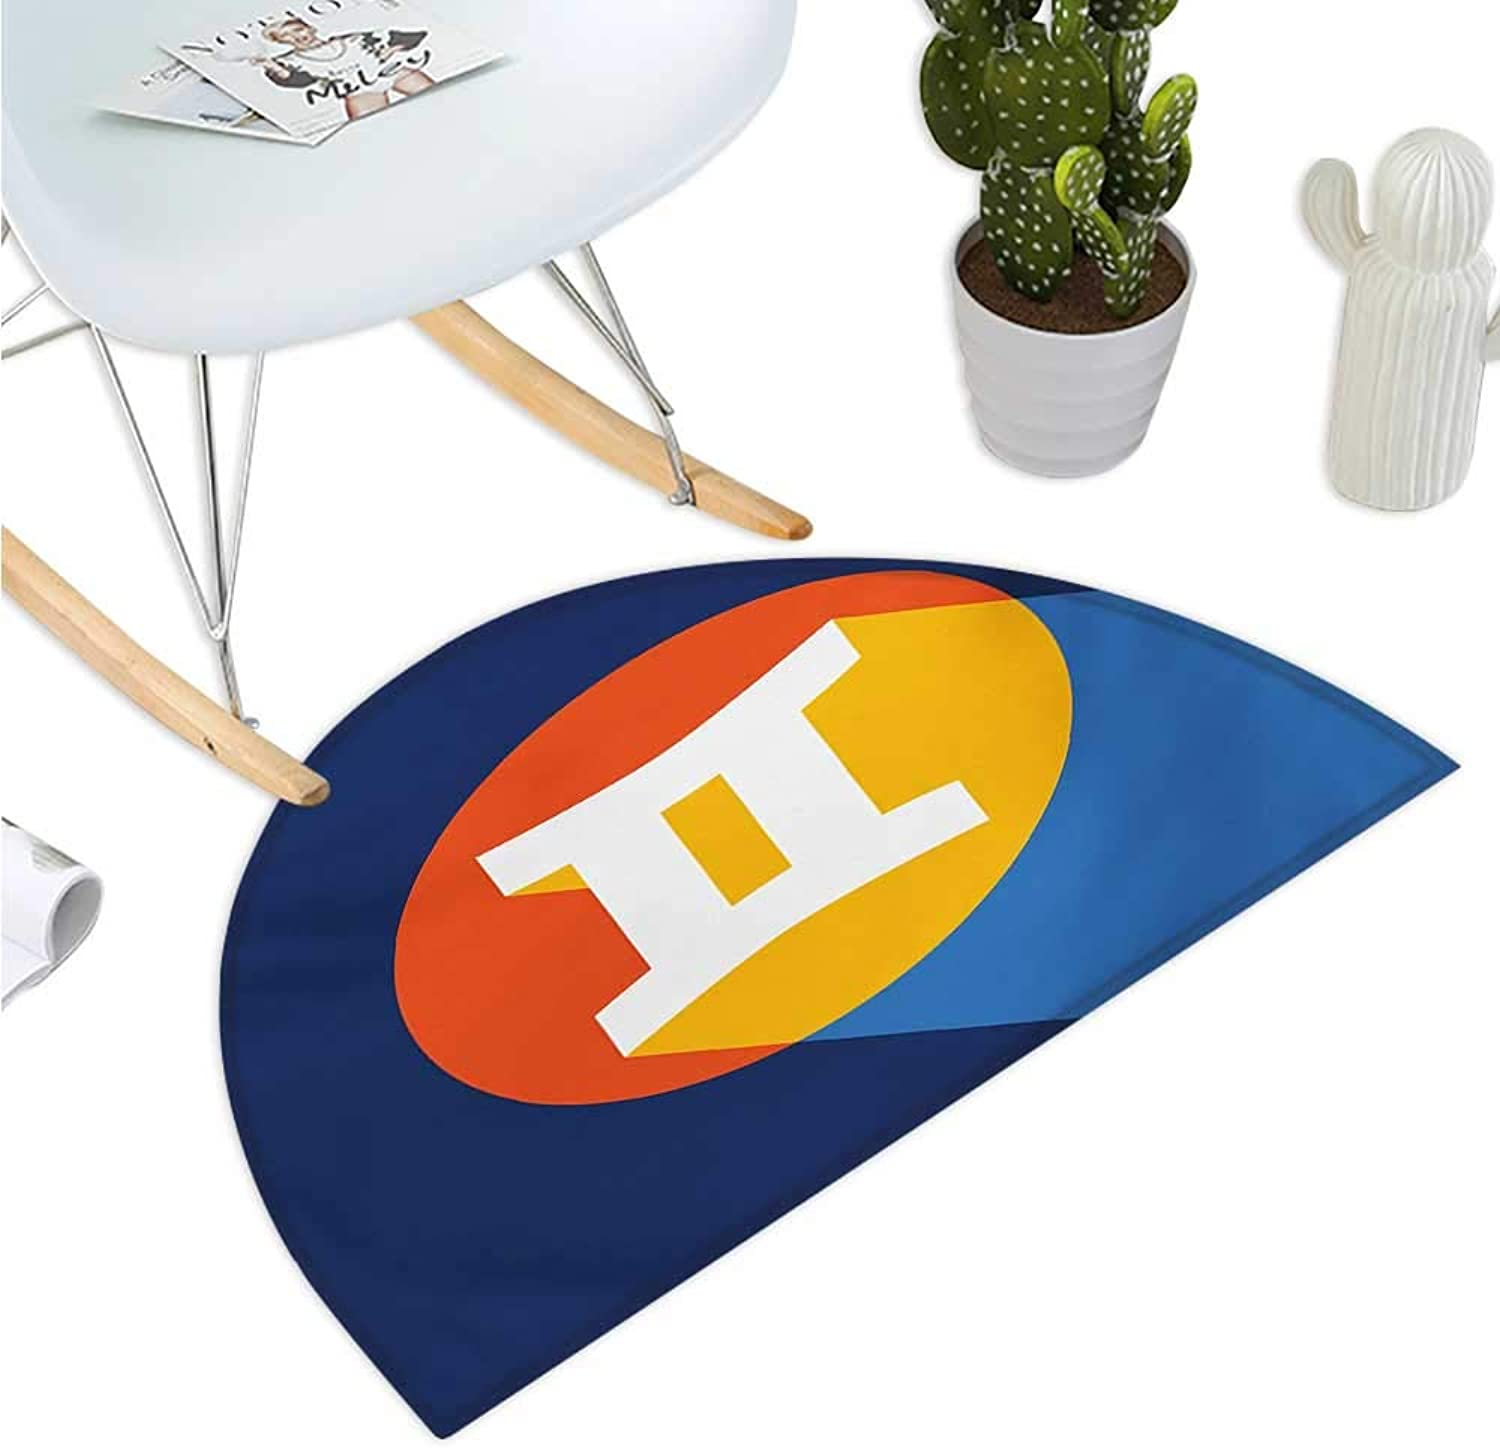 Zodiac Gemini Semicircular Cushion Hgoldscope Sign with colorful Graphic Design in a Circle on bluee Background Entry Door Mat H 51.1  xD 76.7  Multicolor